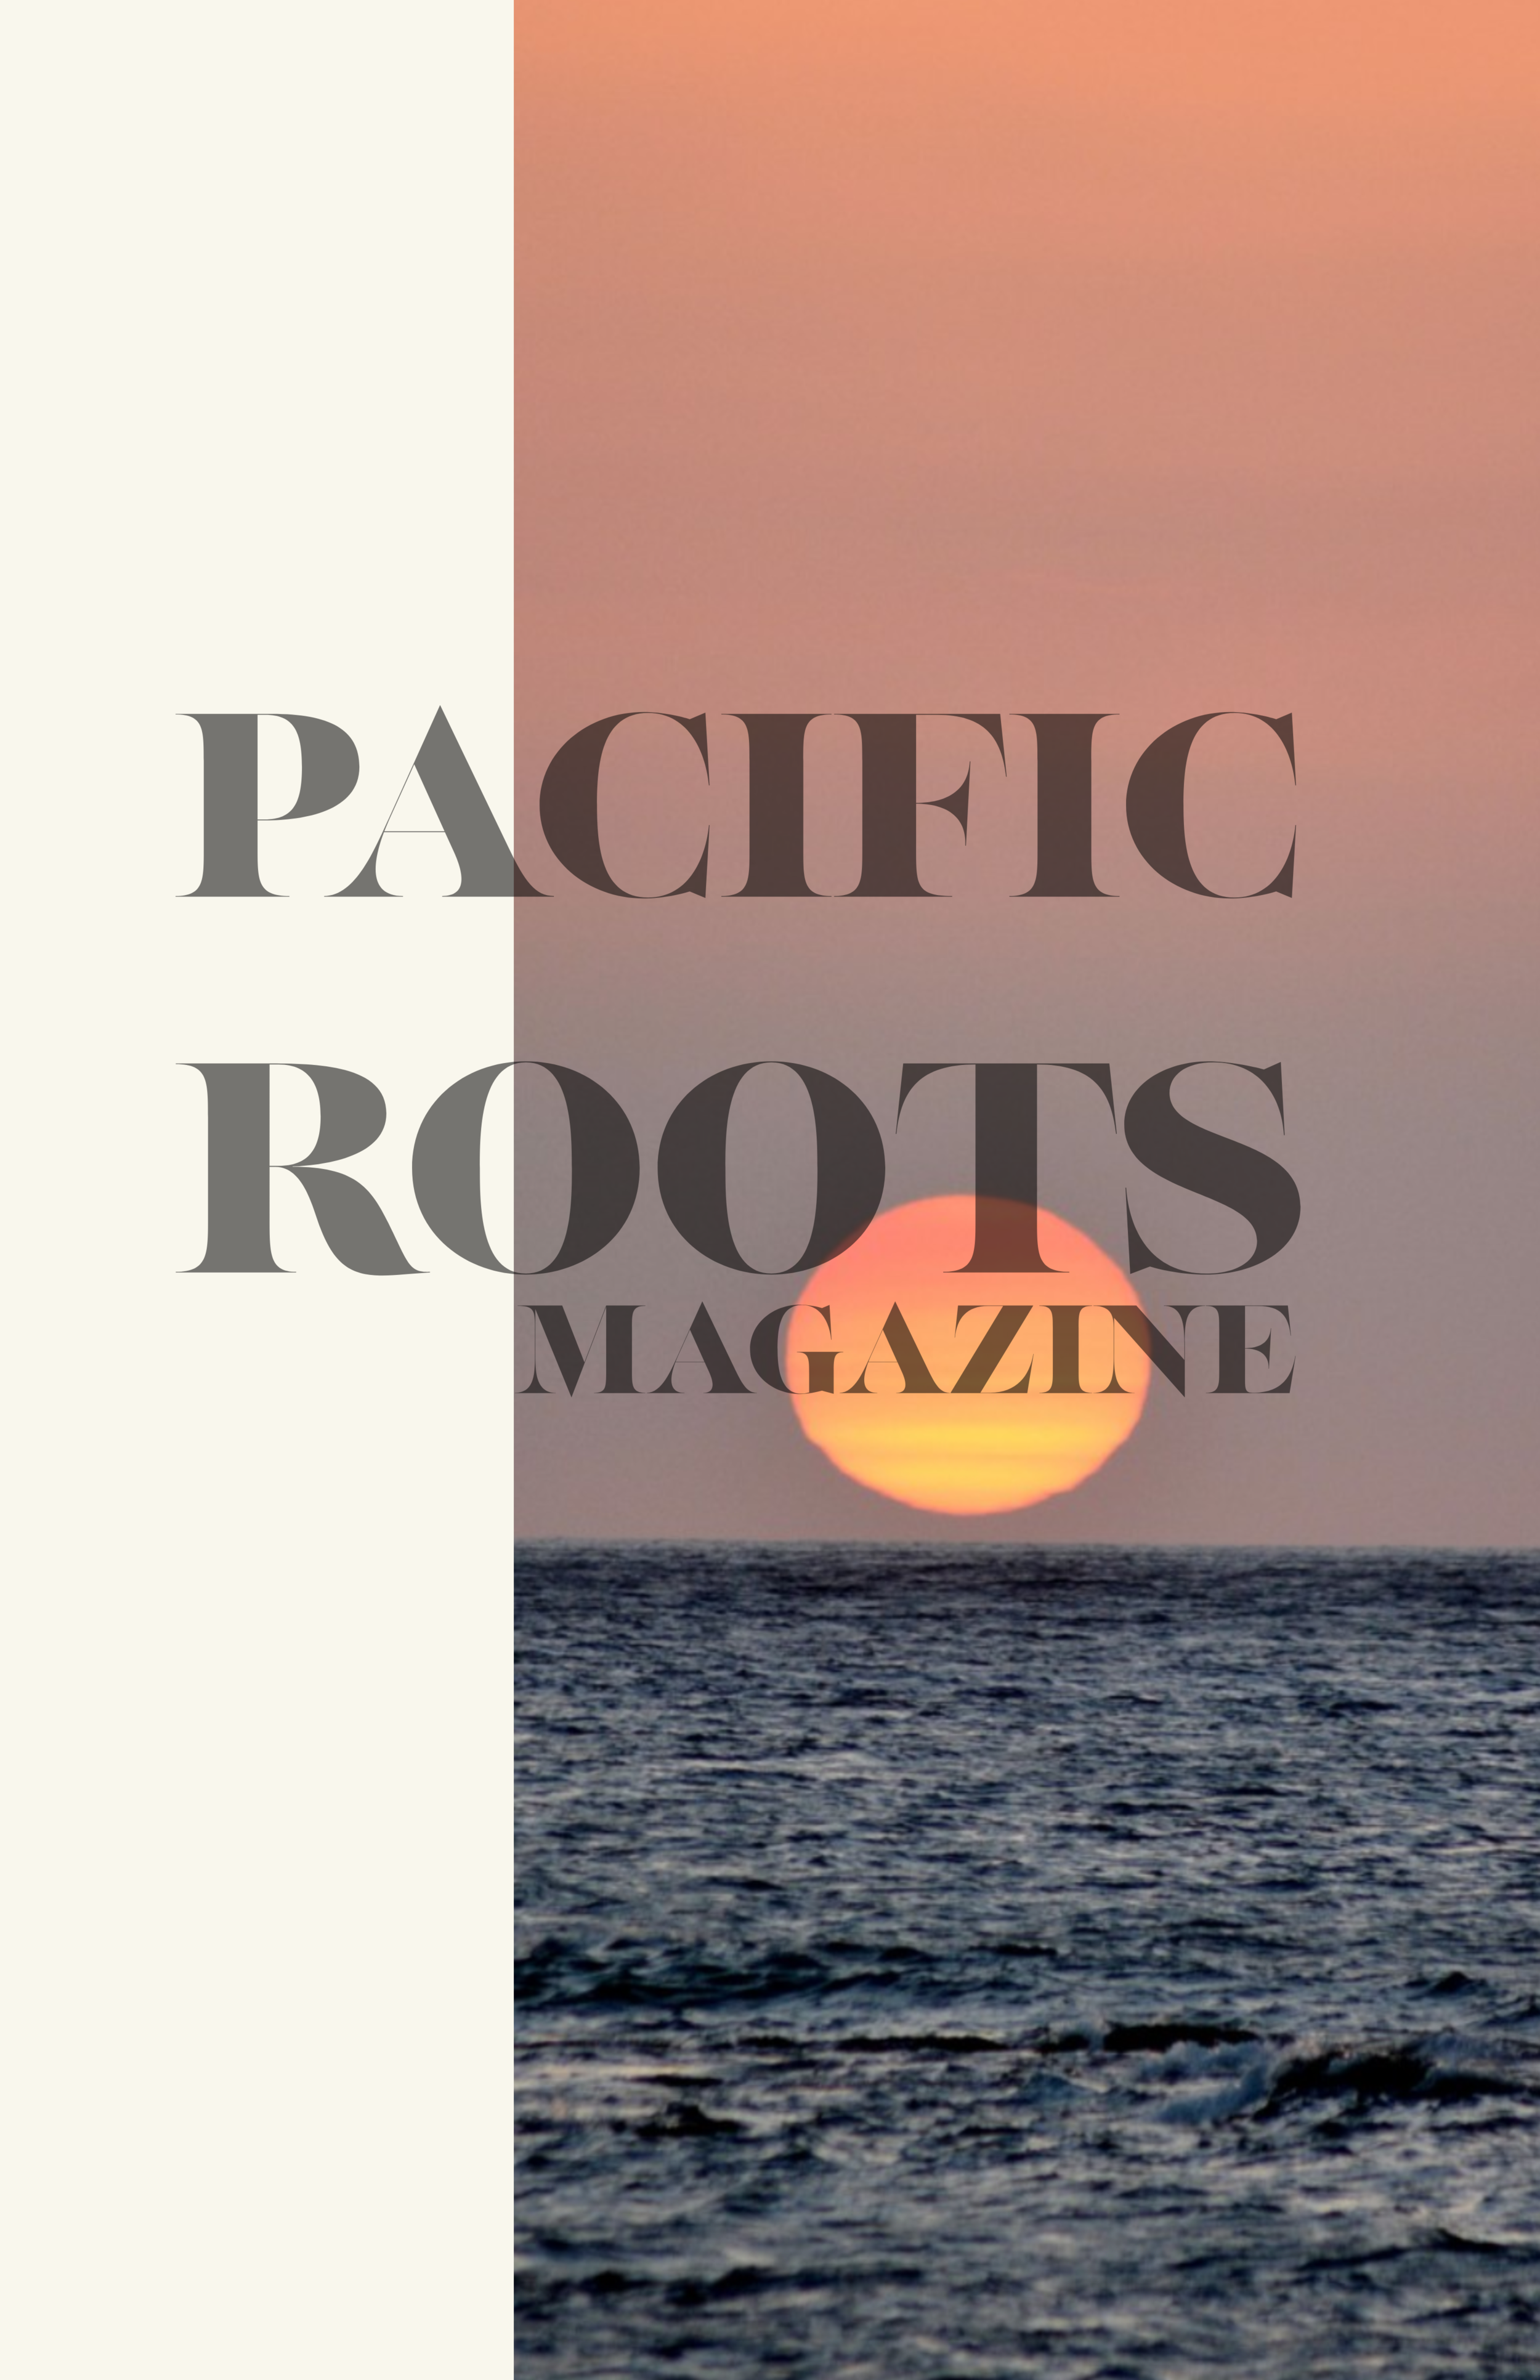 Founder & Editor of Pacific Roots Magazine - Launched in July 2019, Pacific Roots Magazine is a platform devoted to issues of sustainability, animal advocacy, animal sanctuaries, environment, green city issues, veganic agriculture, plant based food & more. Content is delivered digitally on a rolling basis.